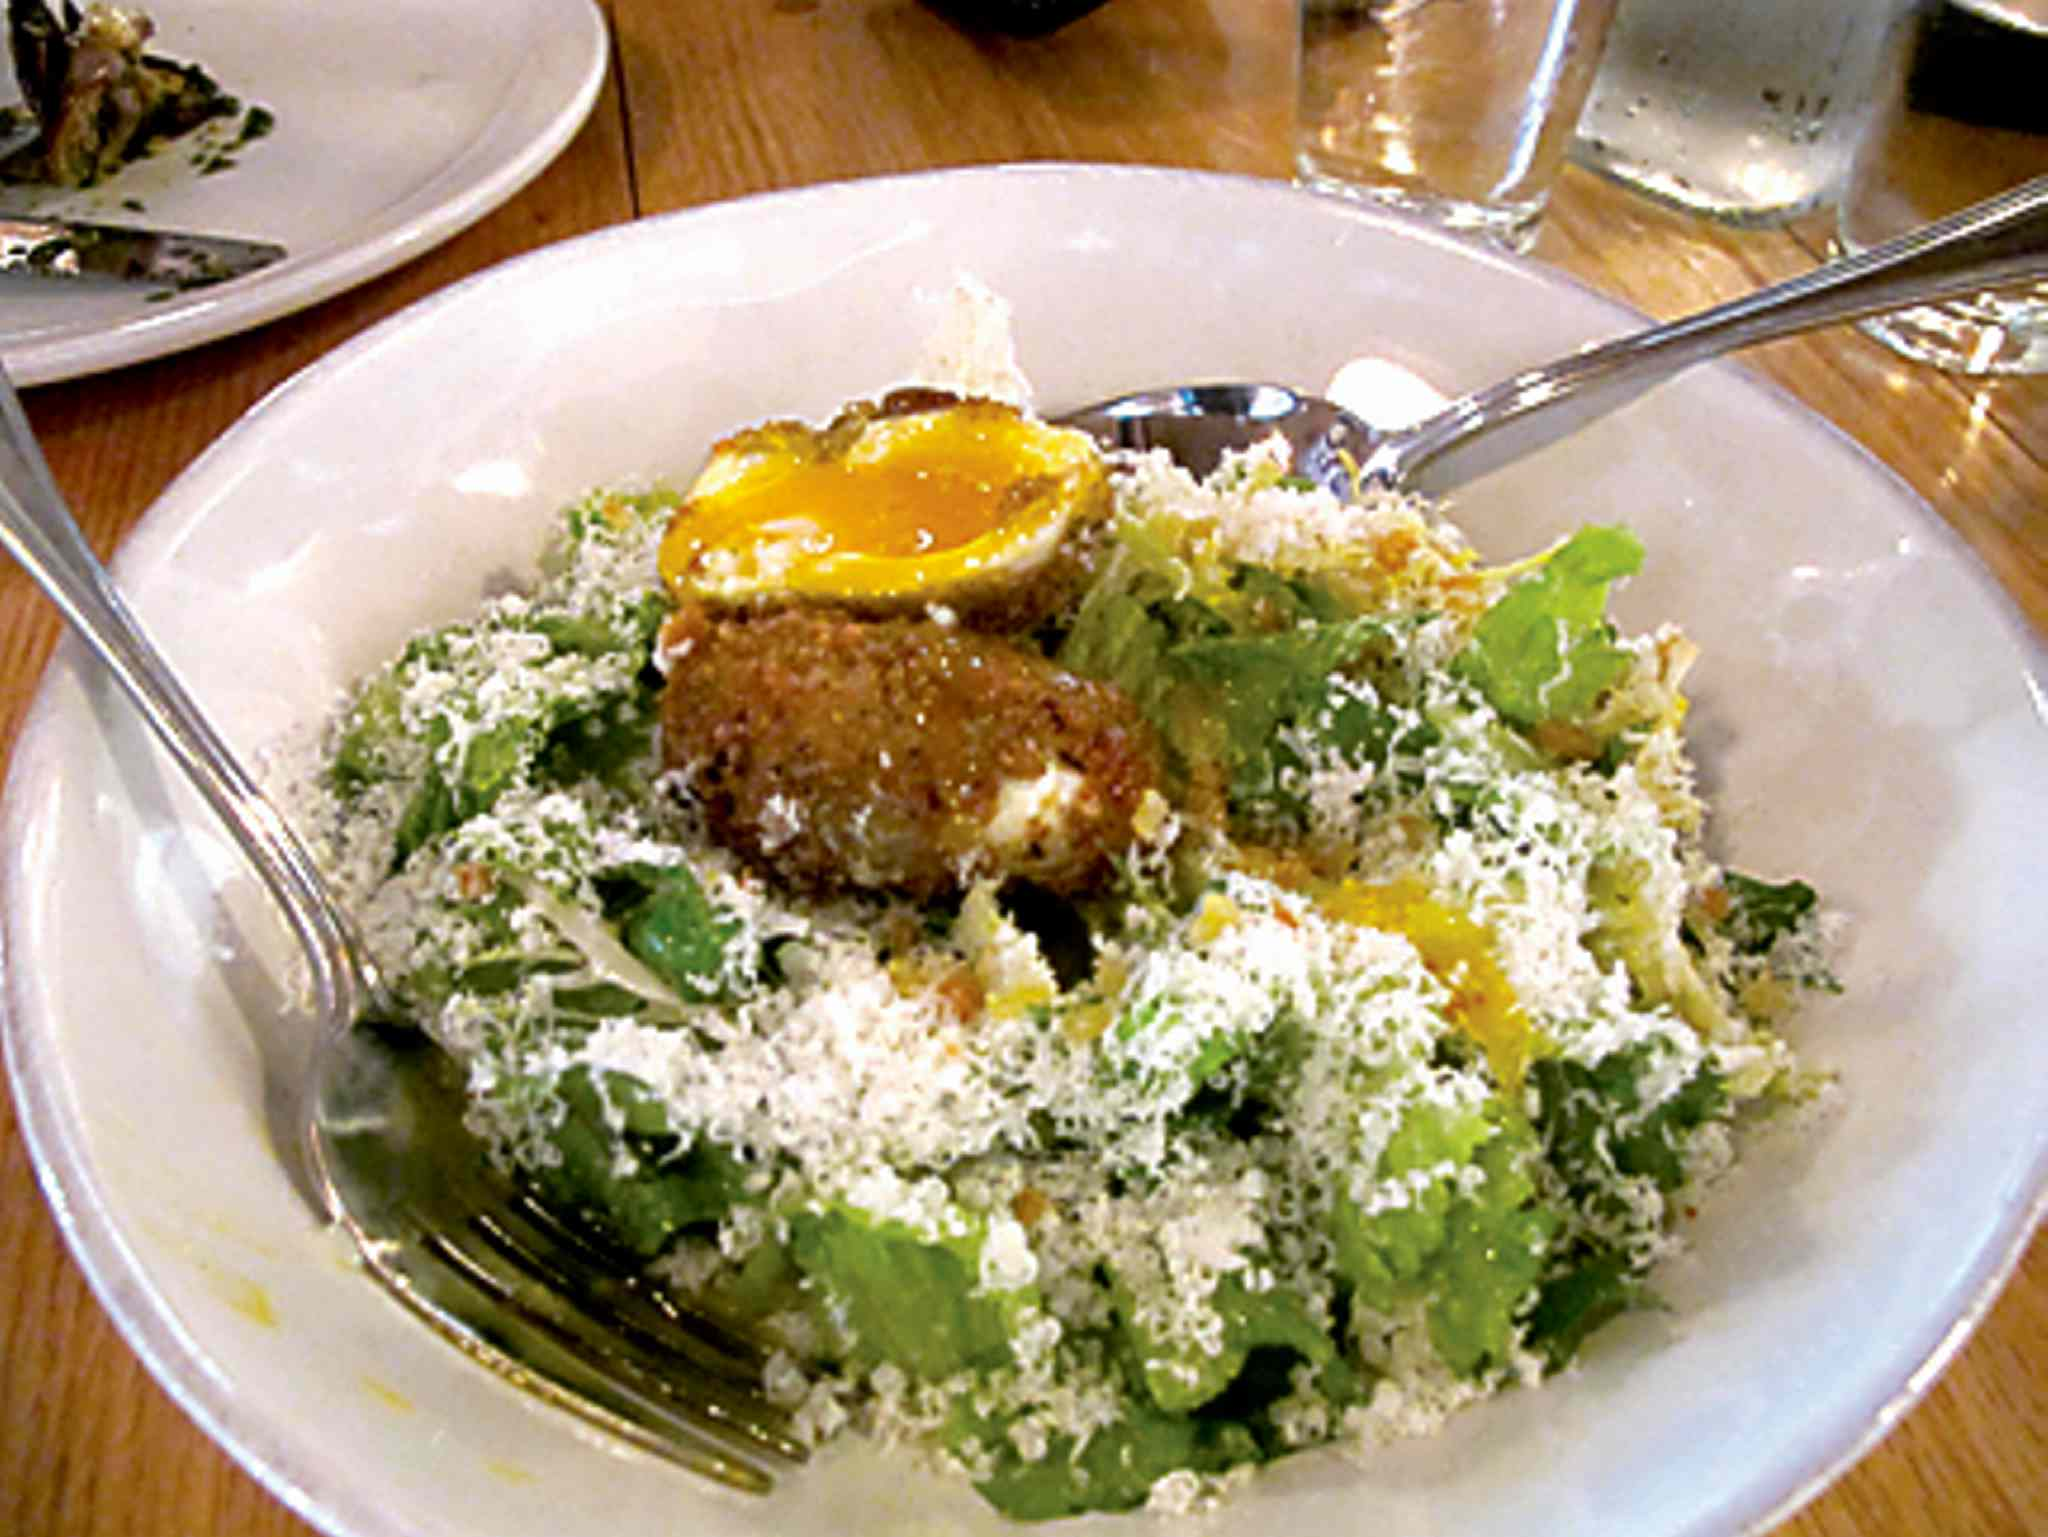 Caesar salad with deep-fried egg from Mani Osteria & Bar.